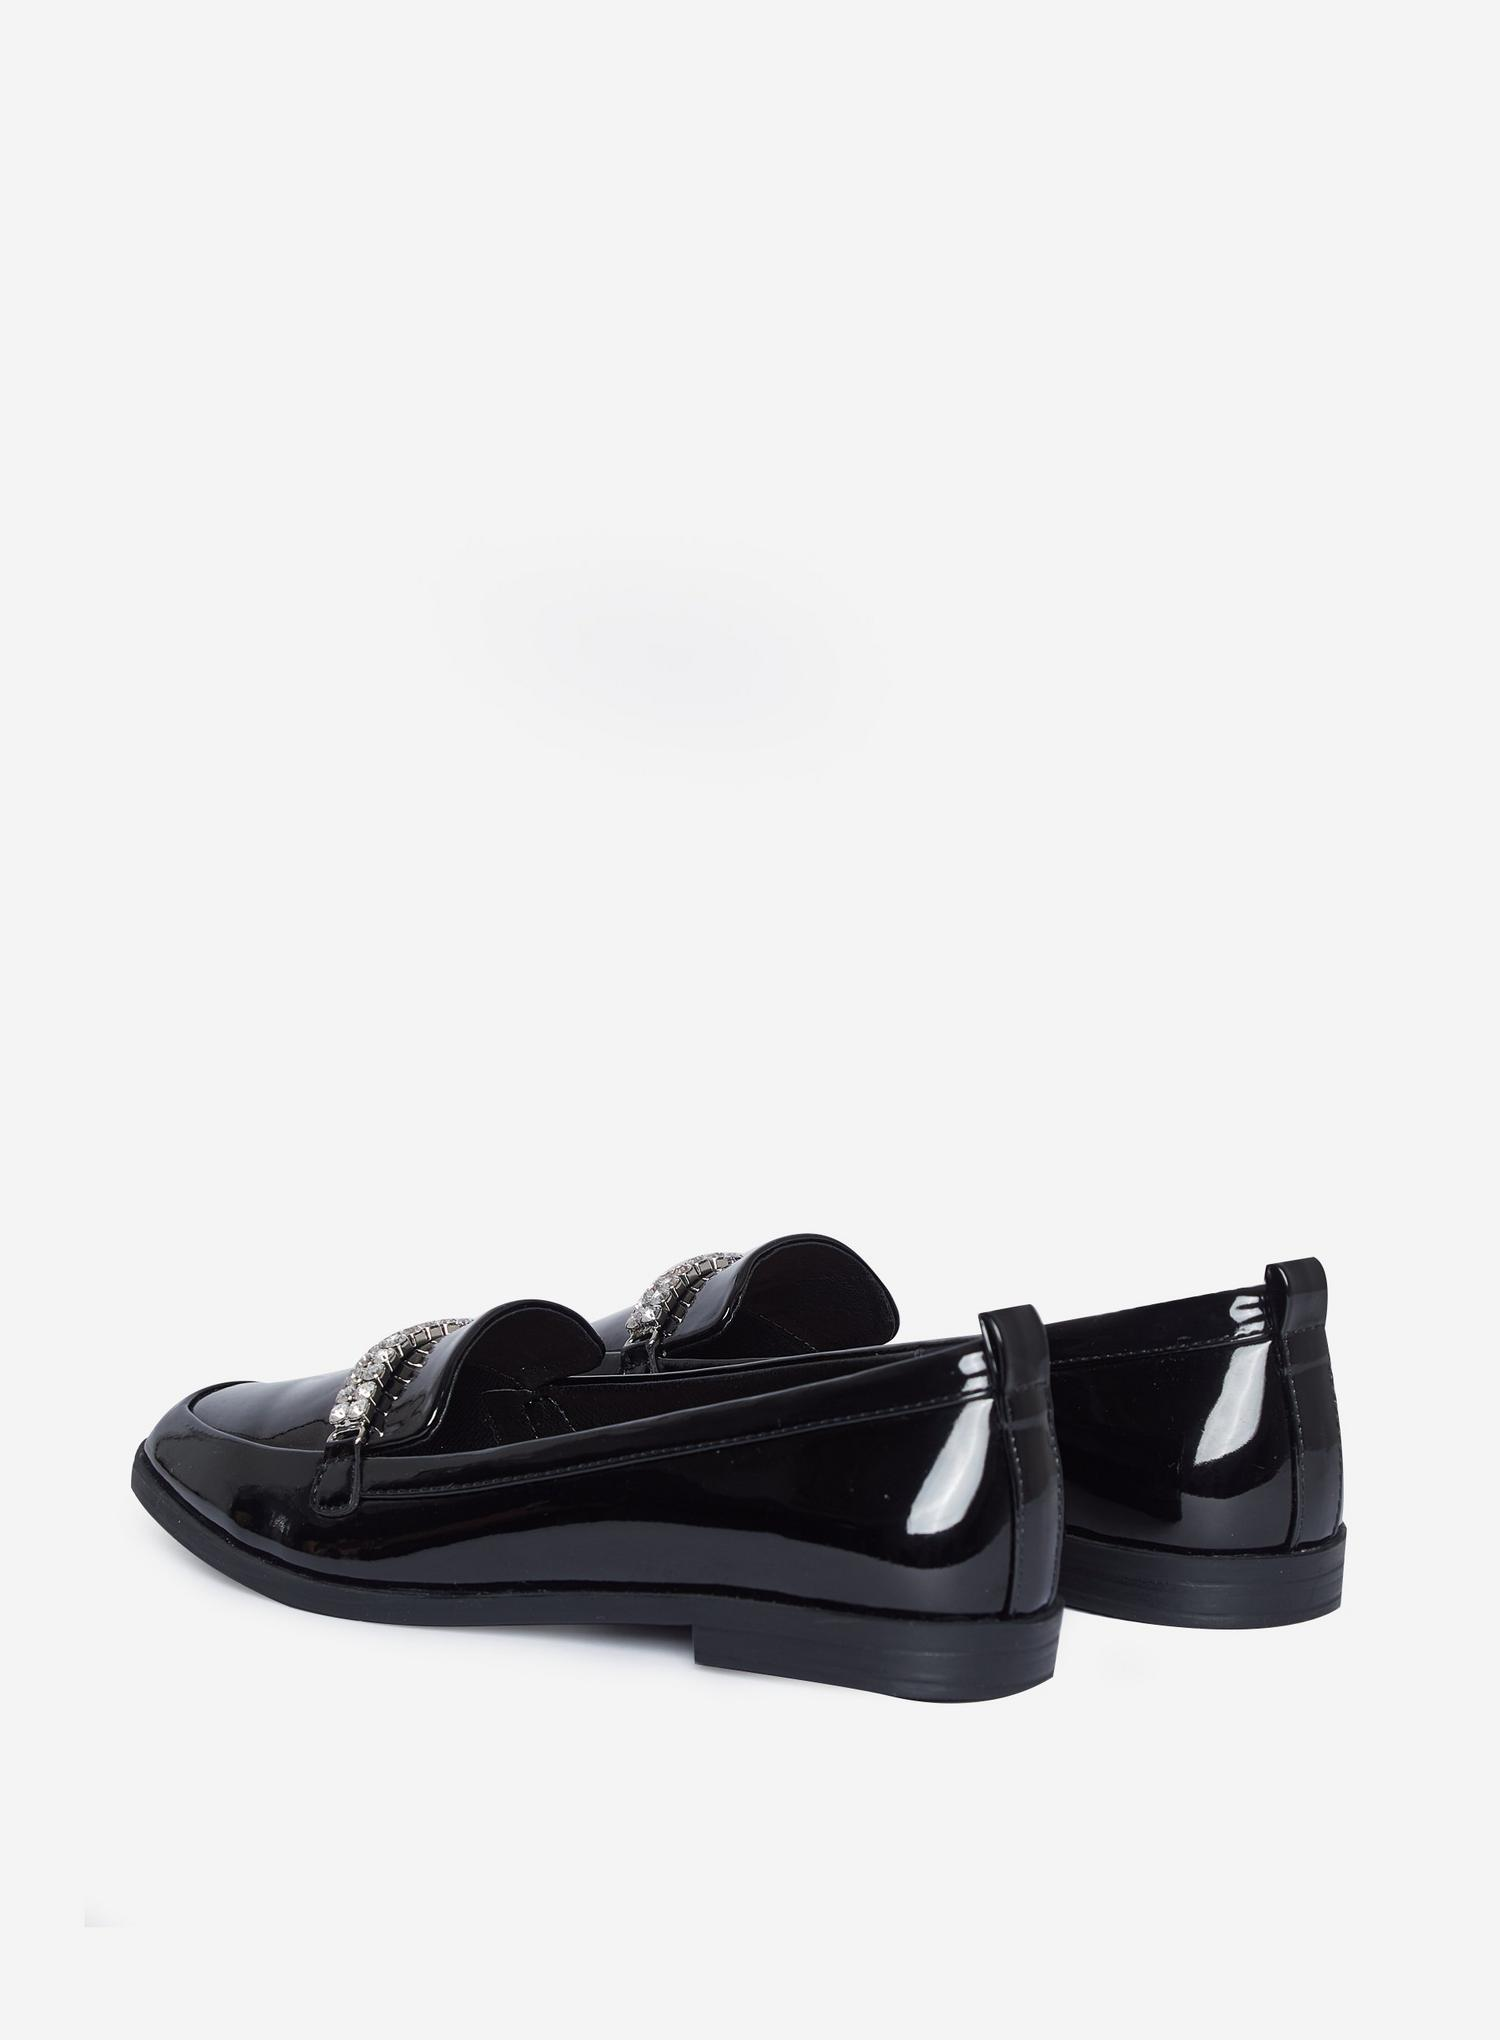 105 Black Lightning Loafers image number 4